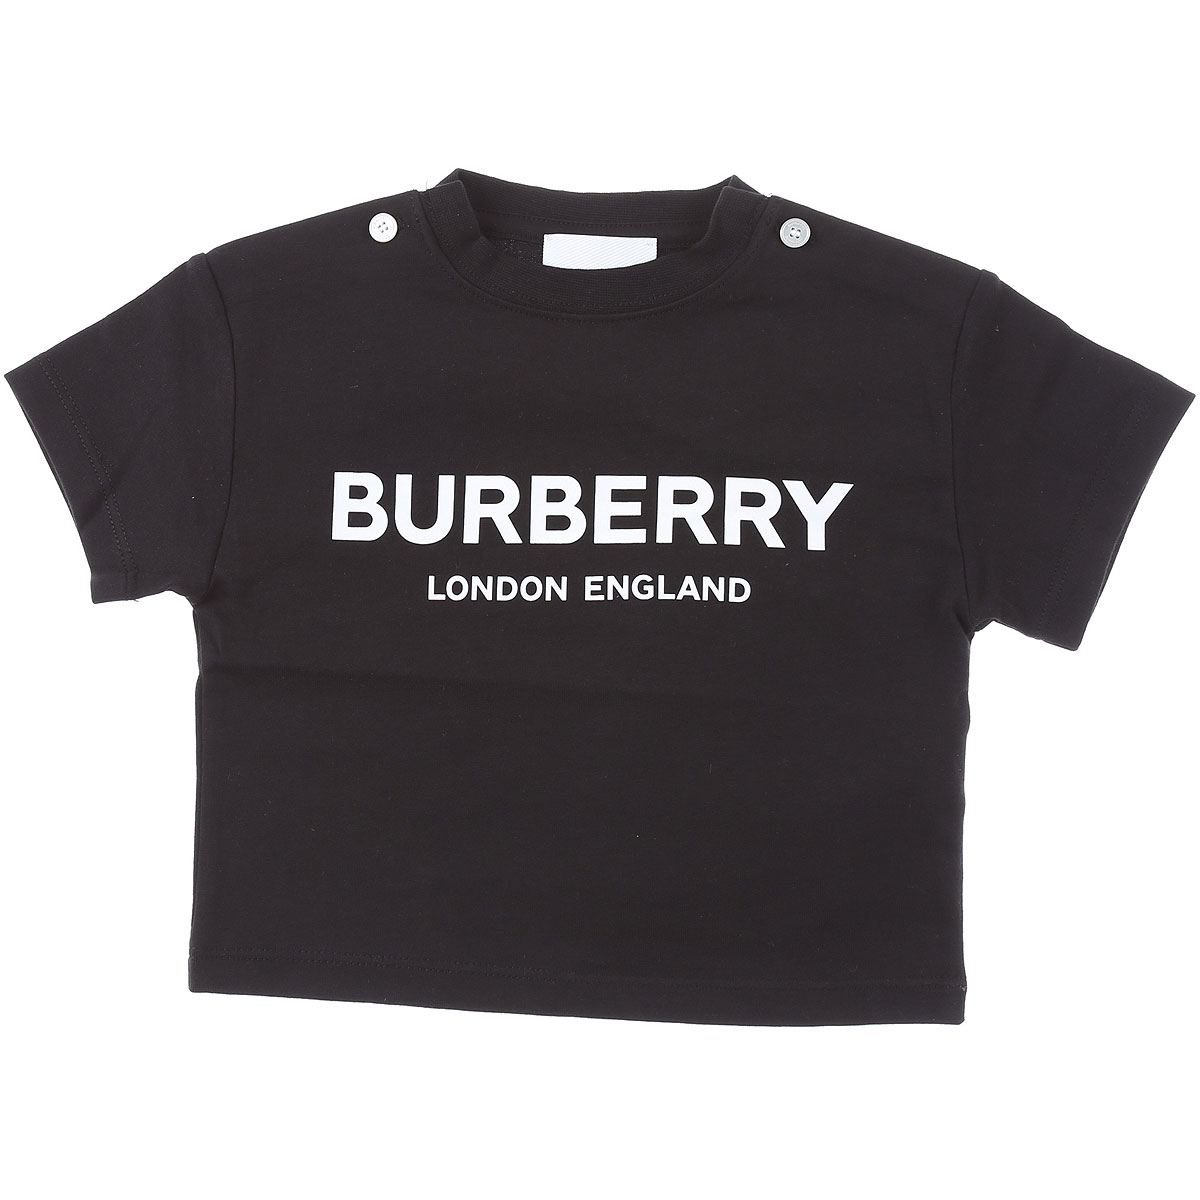 Burberry Baby T-Shirt for Boys On Sale, Black, Cotton, 2019, 12 M 18M 6M